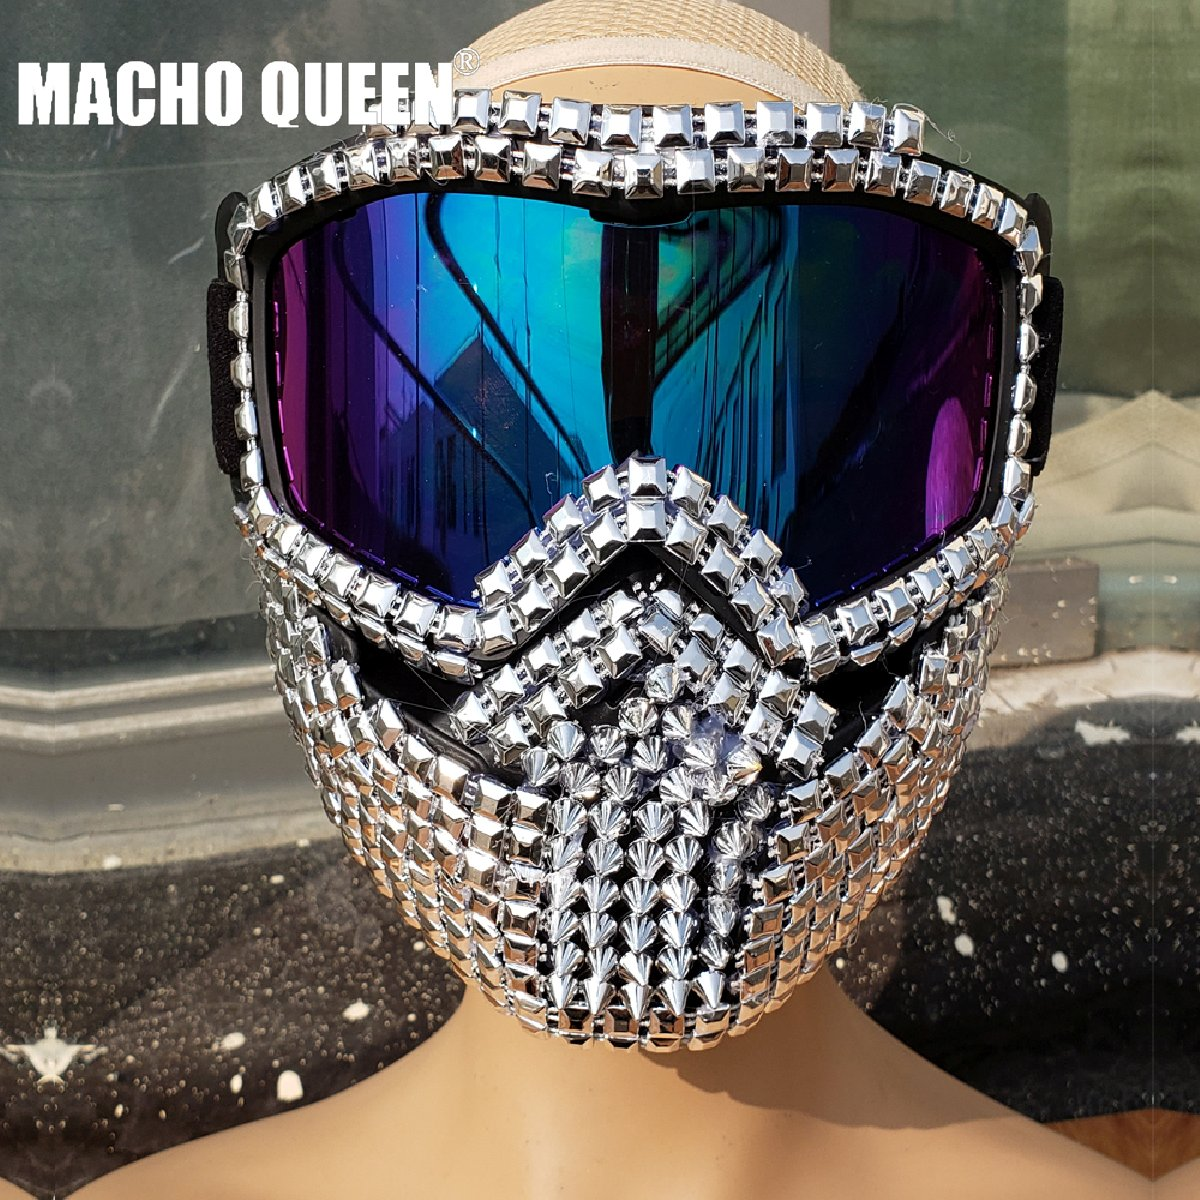 Holographic Iridescent Streampunk Burning Man Accessies Studded Mask Helmet Costume Fashion Stage Show Summer Festival Rave Gear